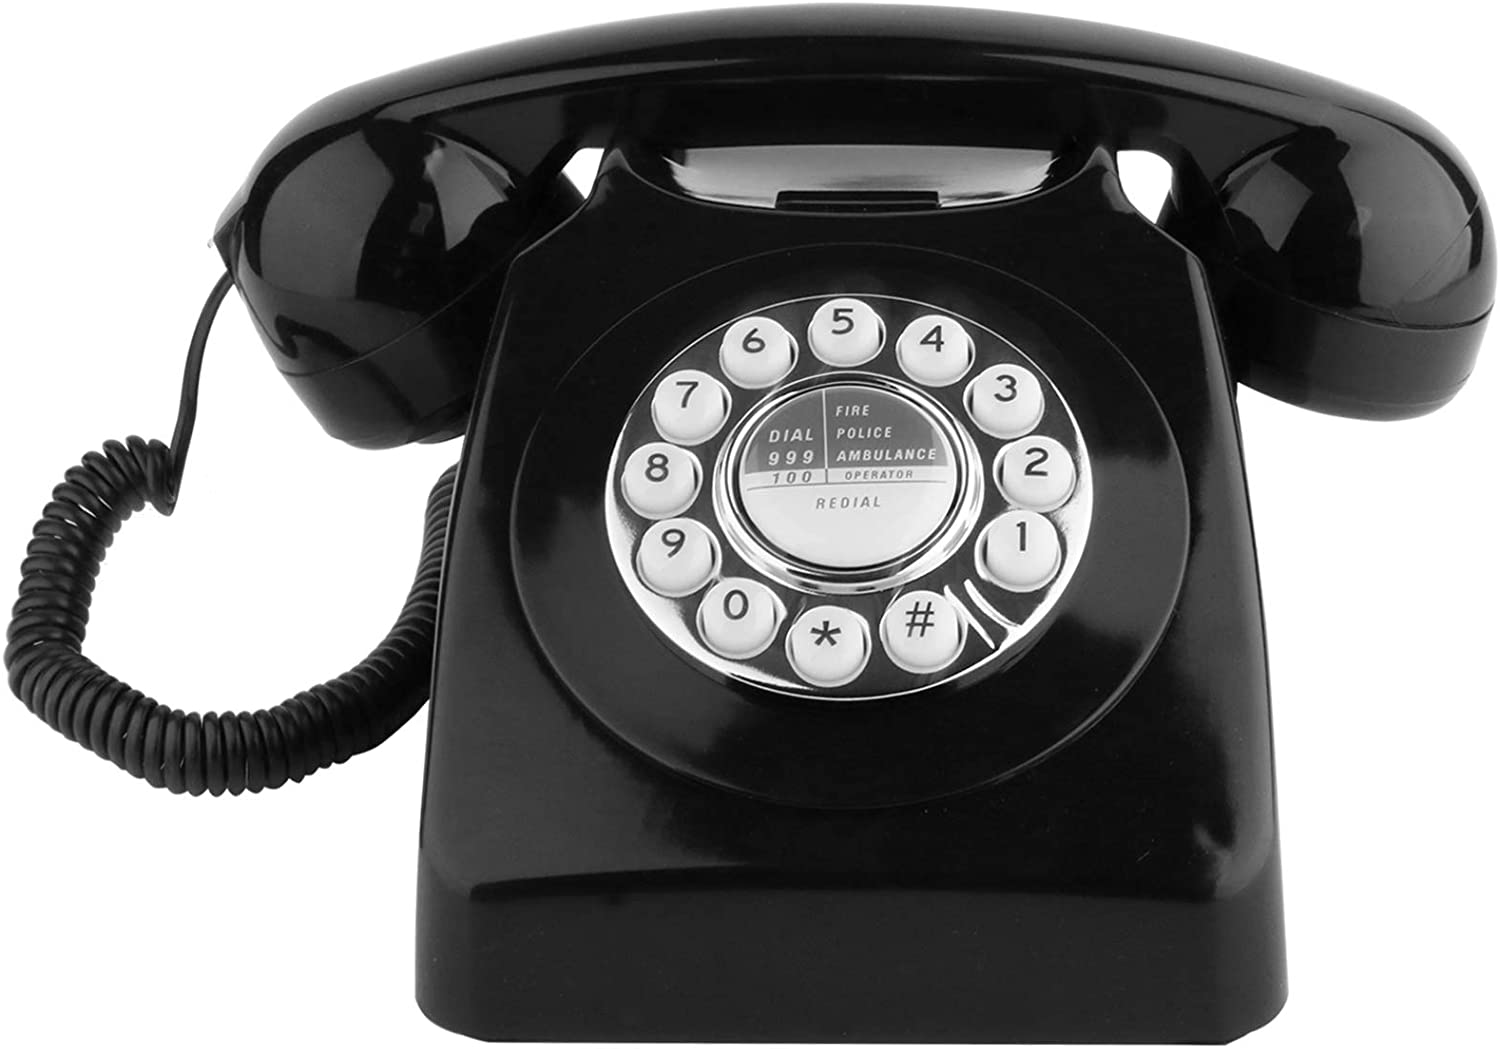 Sangyn Retro Landline Telephone Classic Rotary Design Old Fashioned Corded Desk Phone with Metal Bell for Home and Office,Black